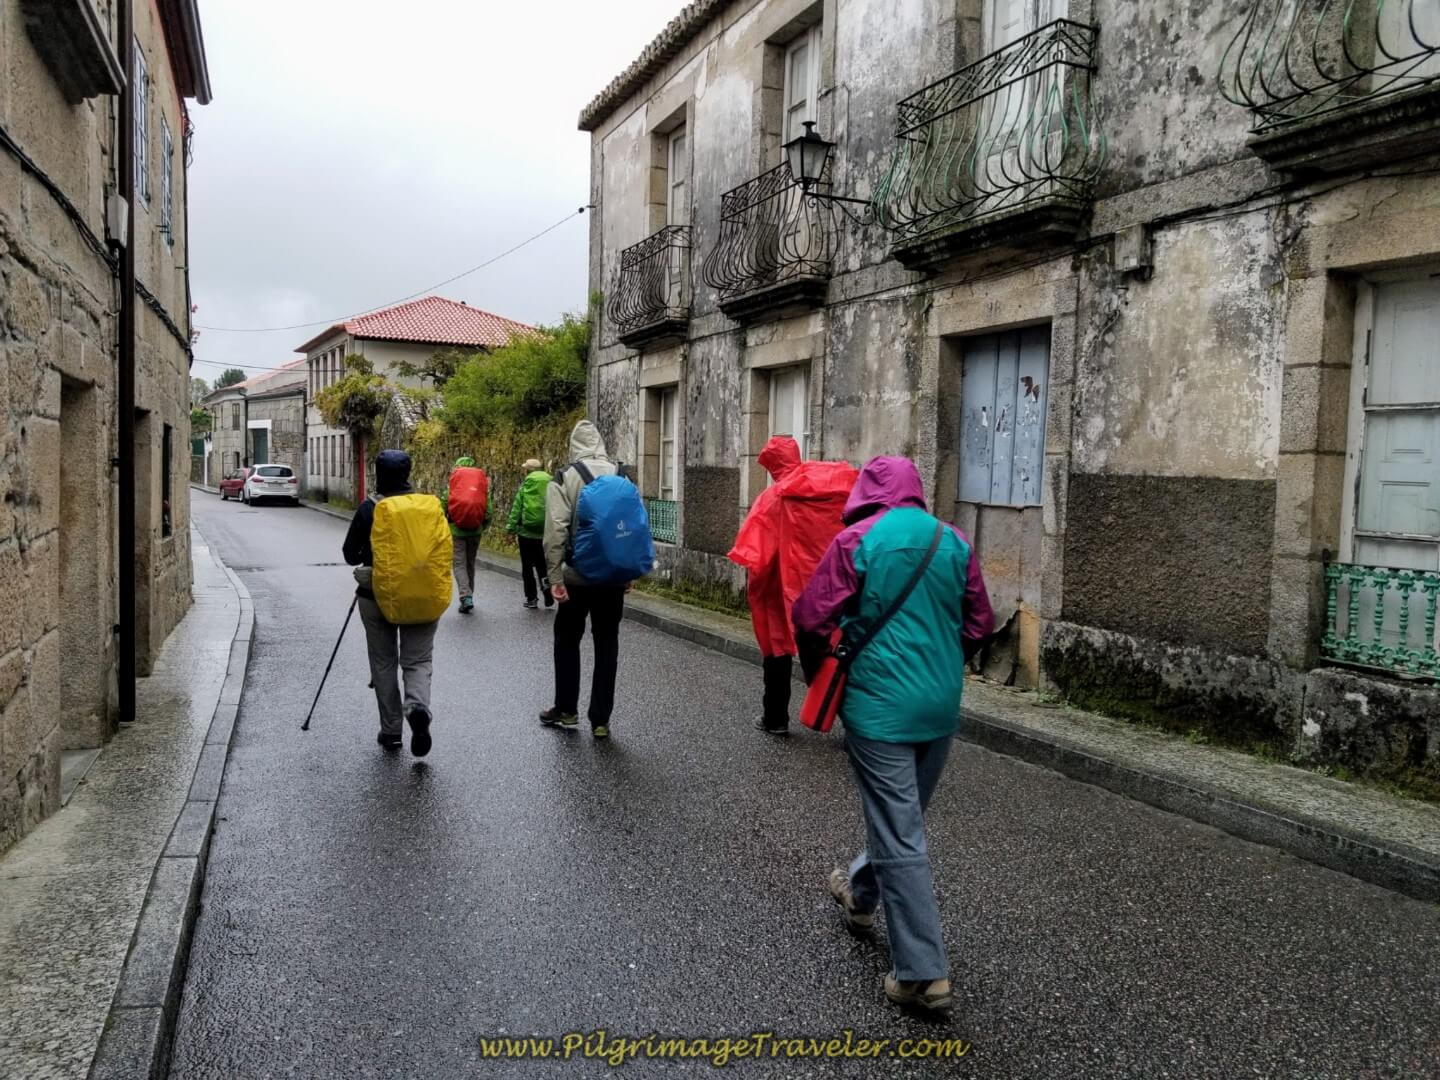 Right Turn on the Rúa San Bartolomeu in Tui  on day twenty on the central route of the Portuguese Camino